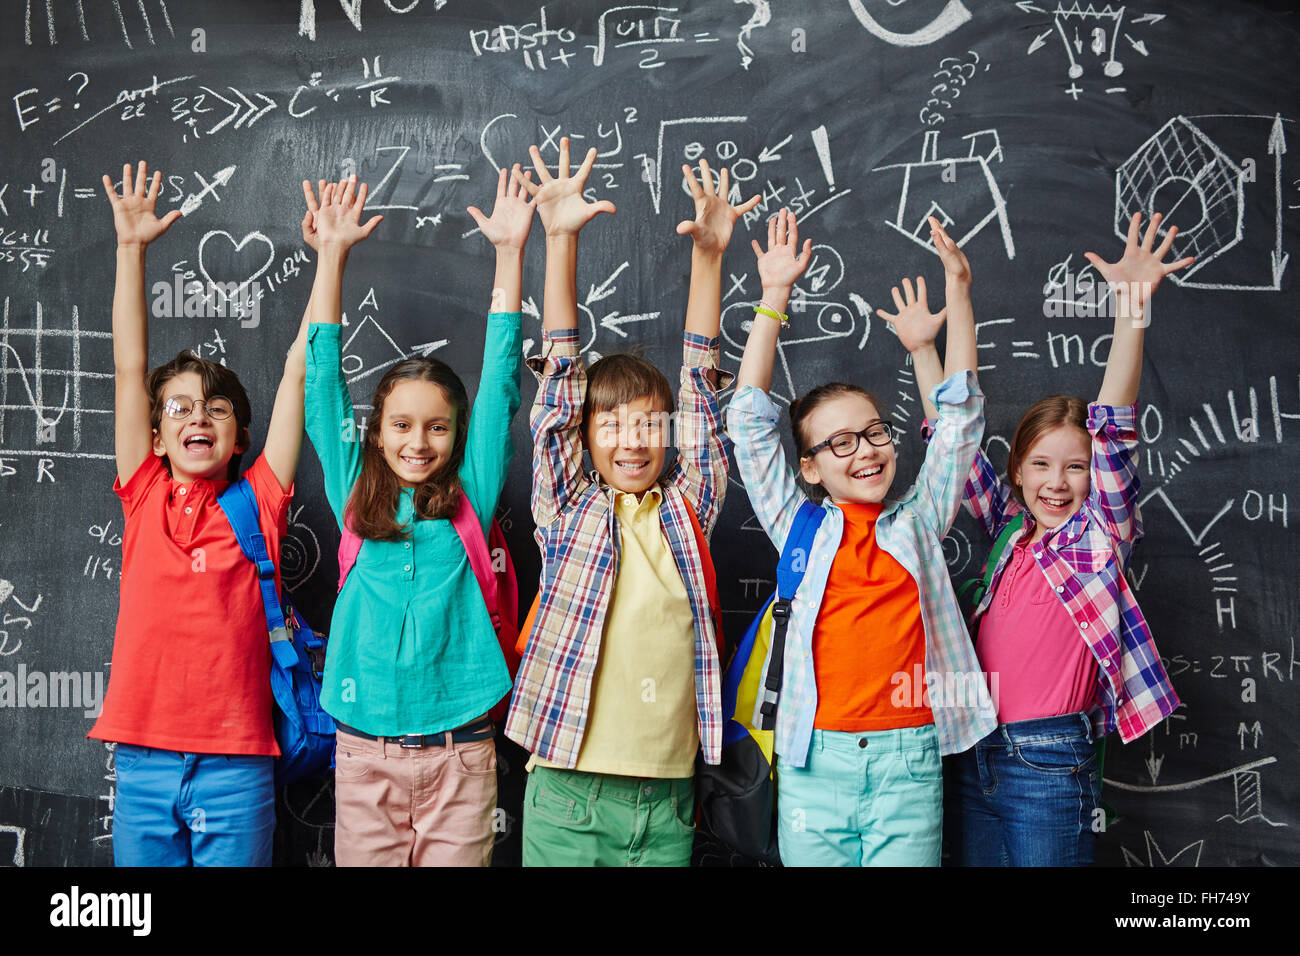 Ecstatic learners raising hands against blackboard - Stock Image